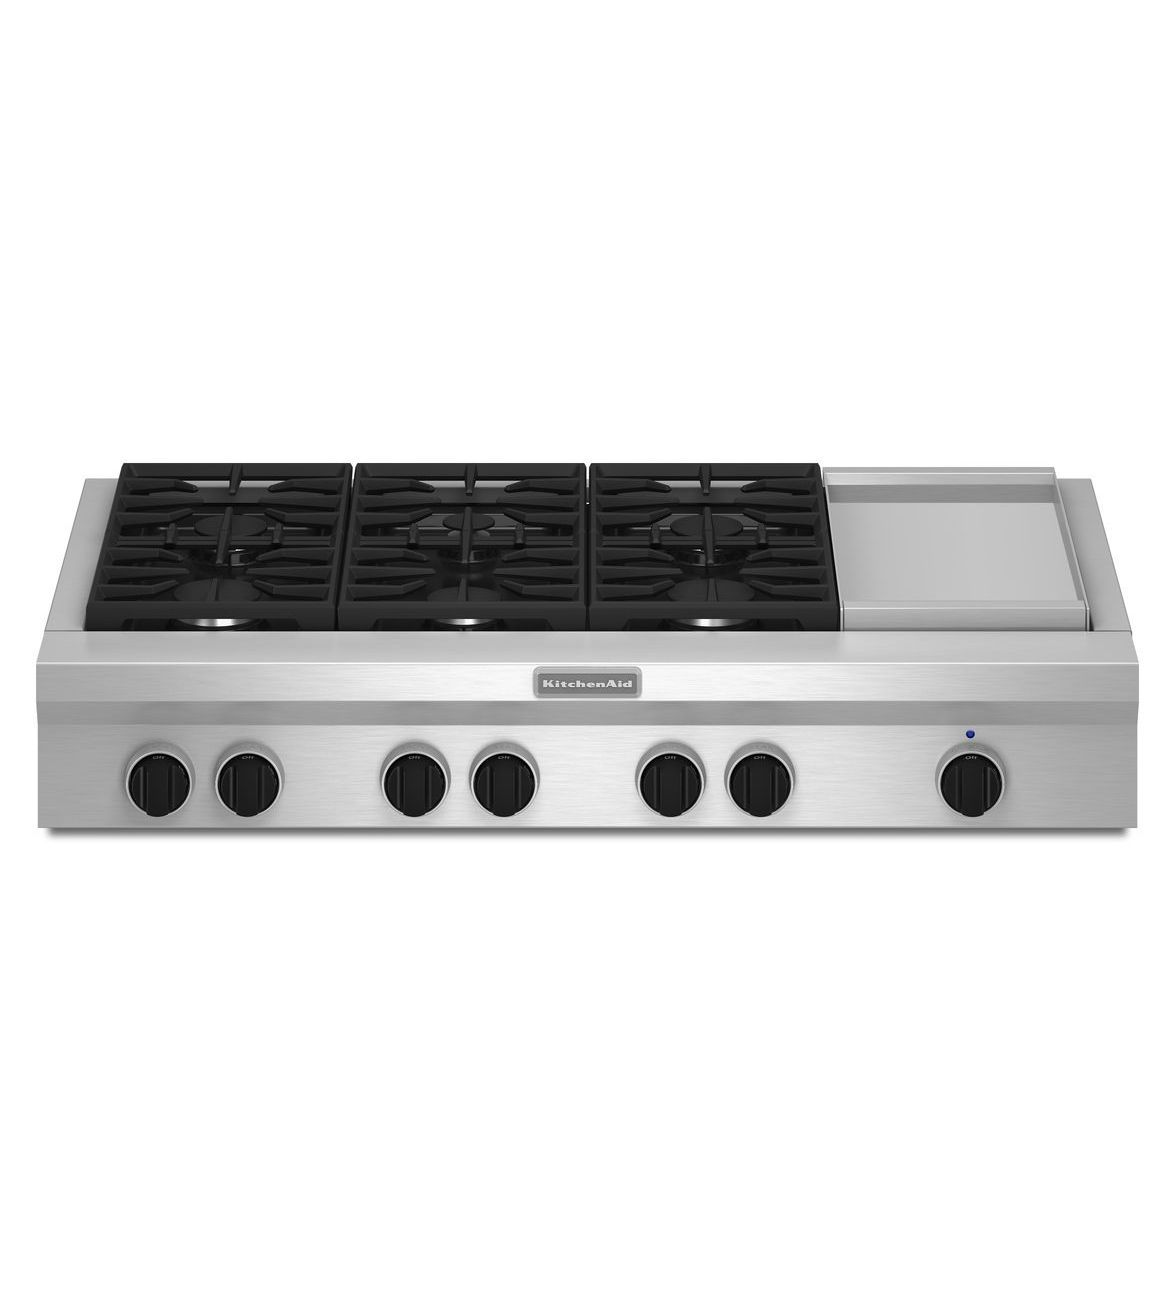 48 Inch 6 Burner With Griddle Gas Rangetop Commercial Style Kgcu483vss Kitchenaid Gas Cooktop Kitchen Aid Cooktop